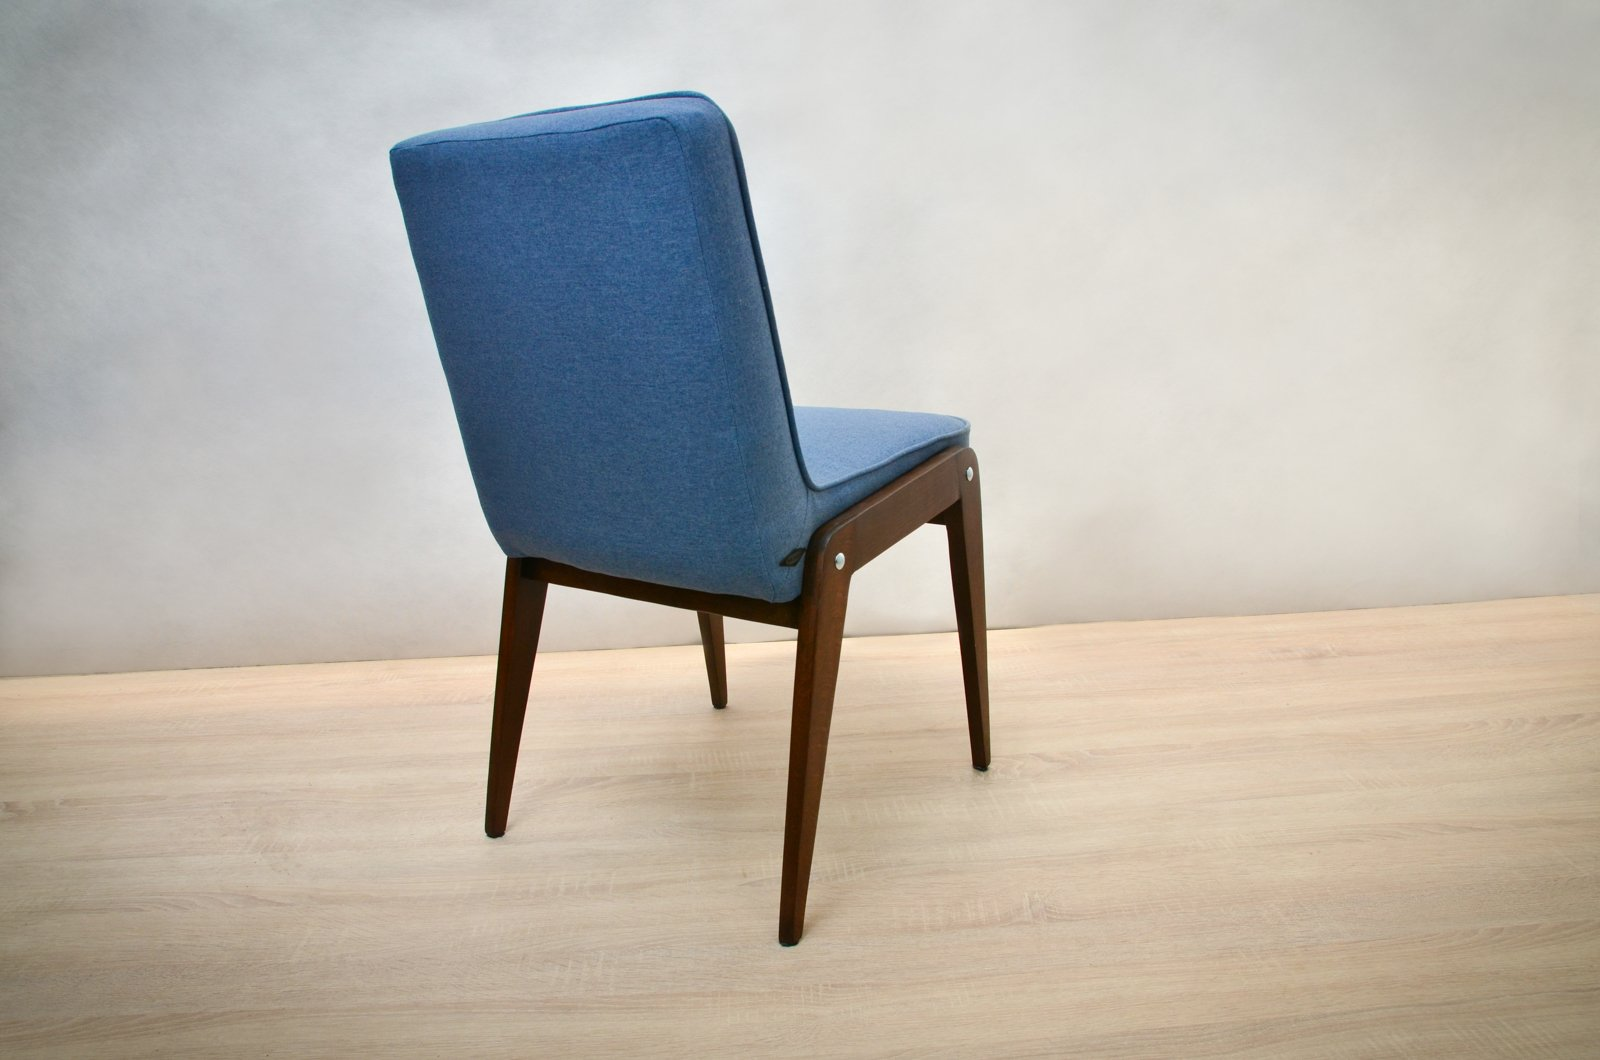 Light blue dining chairs - Aga Light Blue Dining Chairs By J Zef Marian Chierowski 1960s Set Of 4